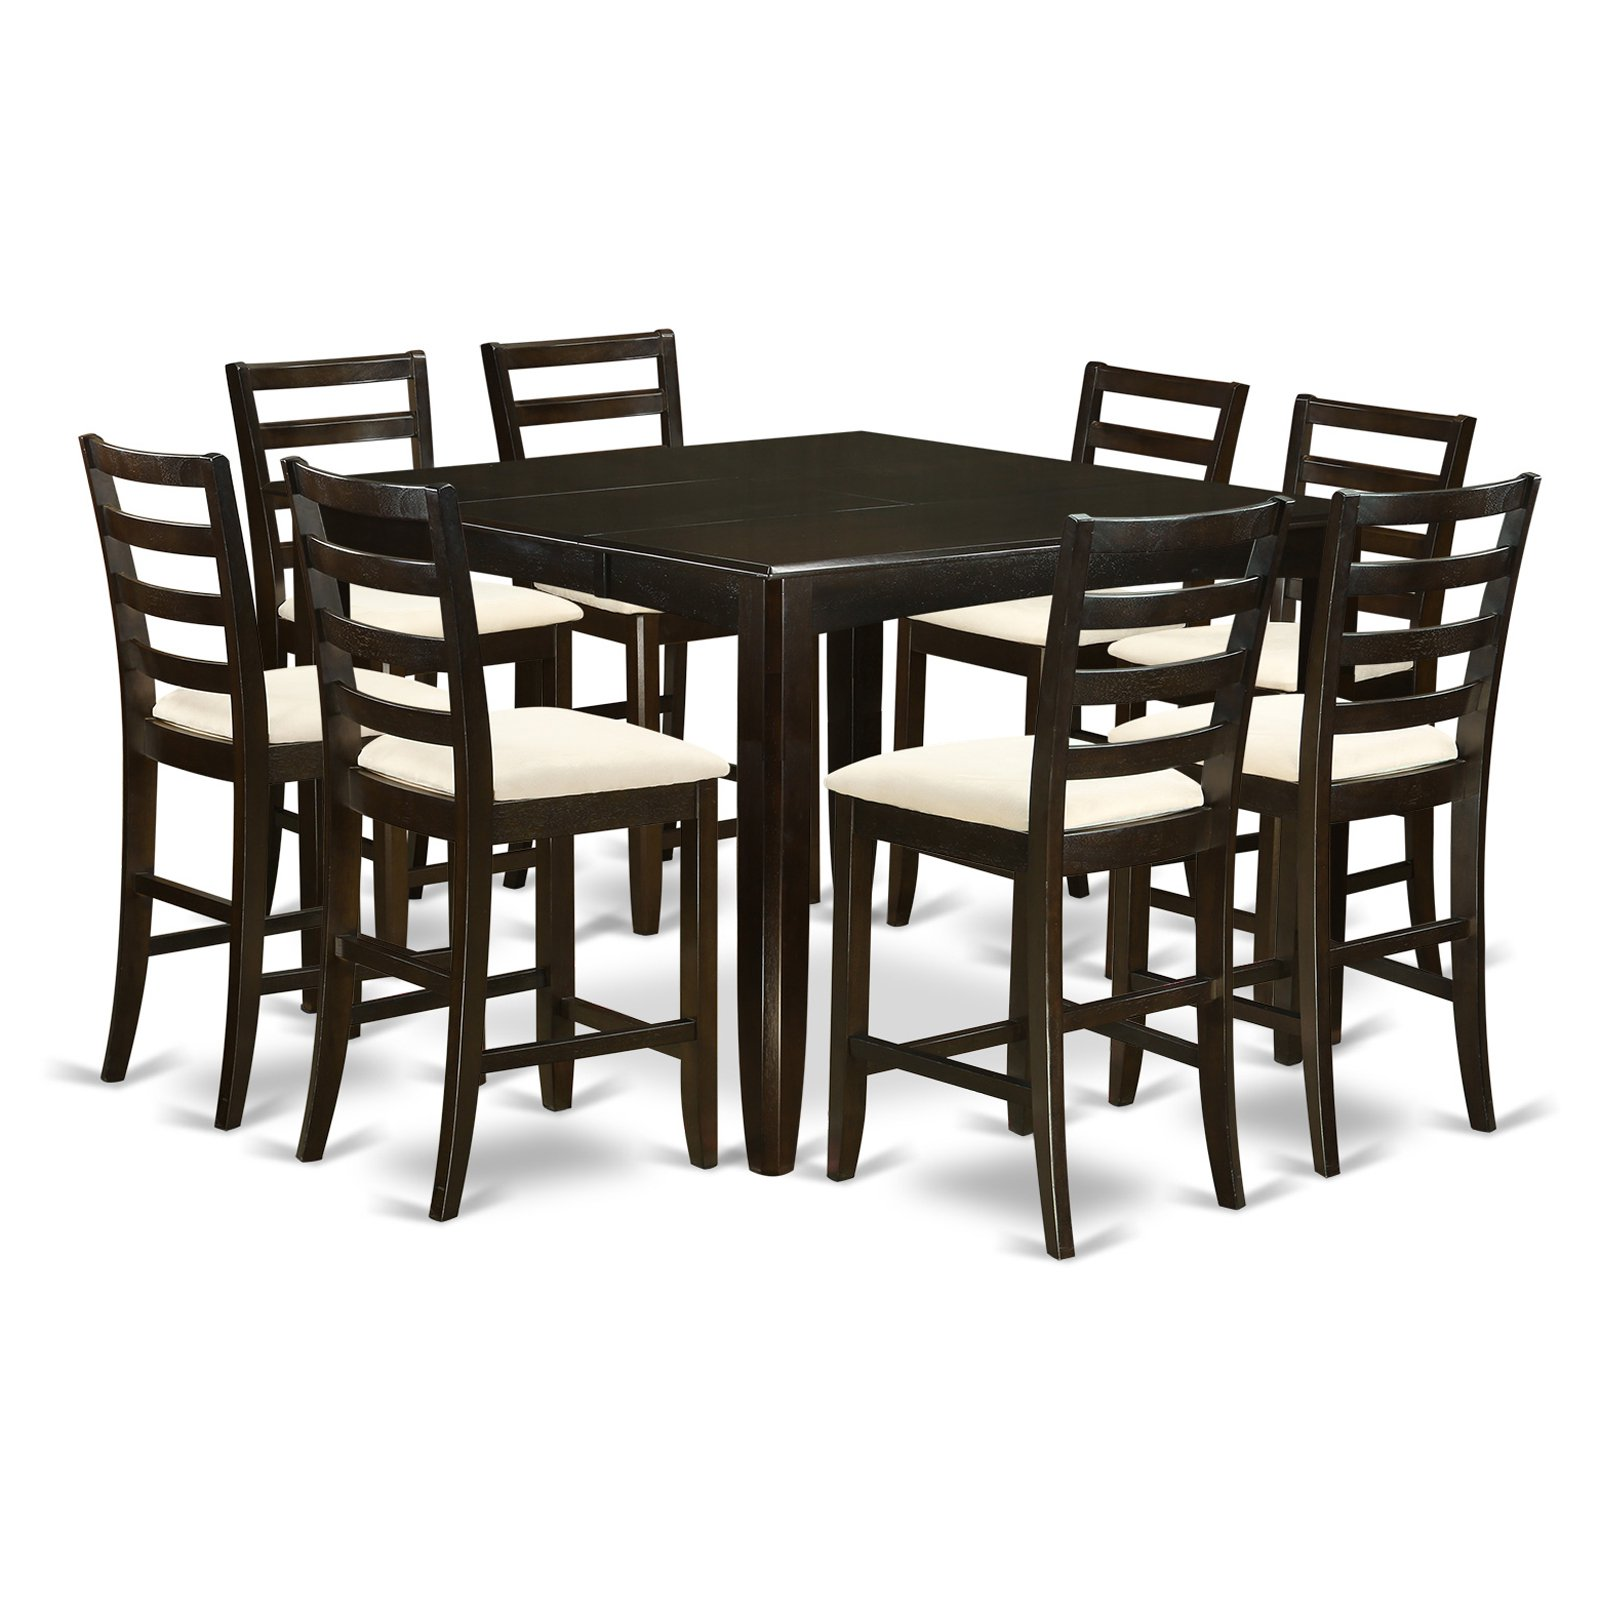 East West Furniture Fairwinds 9 Piece Ladder Back Dining Table Set